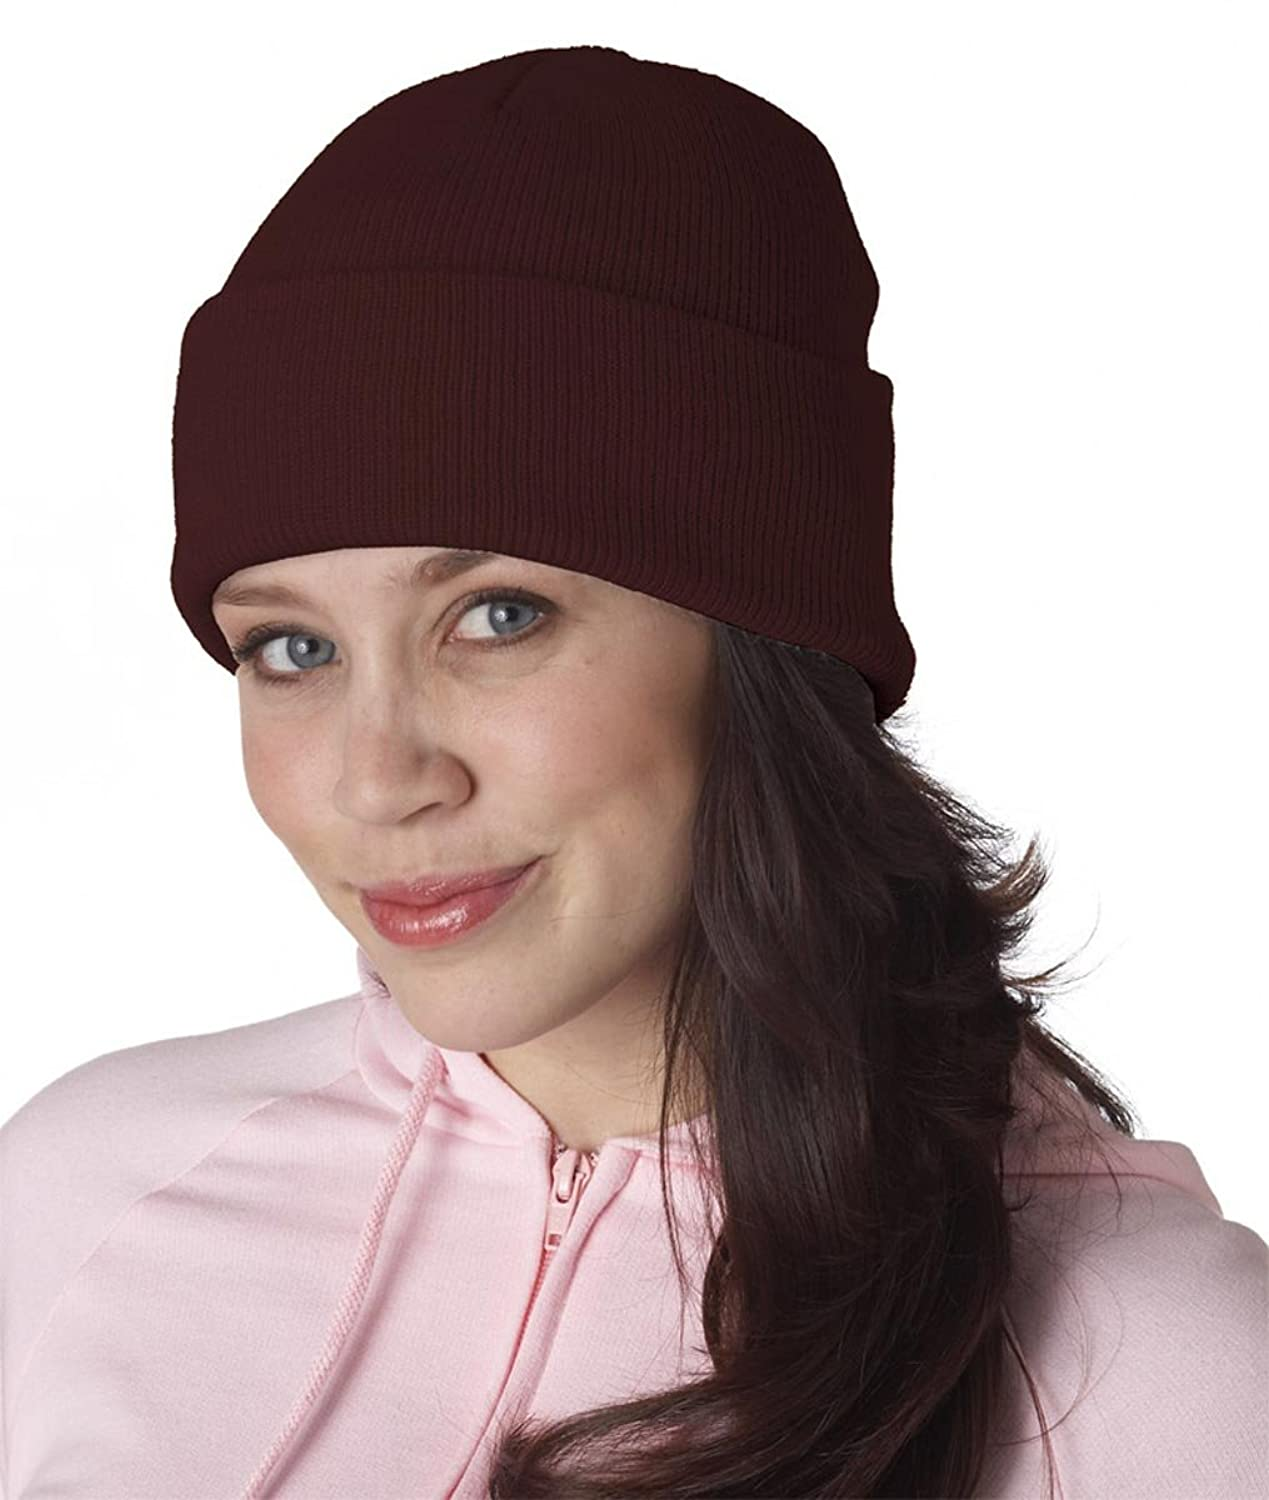 UltraClub Knit Beanie with Cuff one size fits all, Burgundy